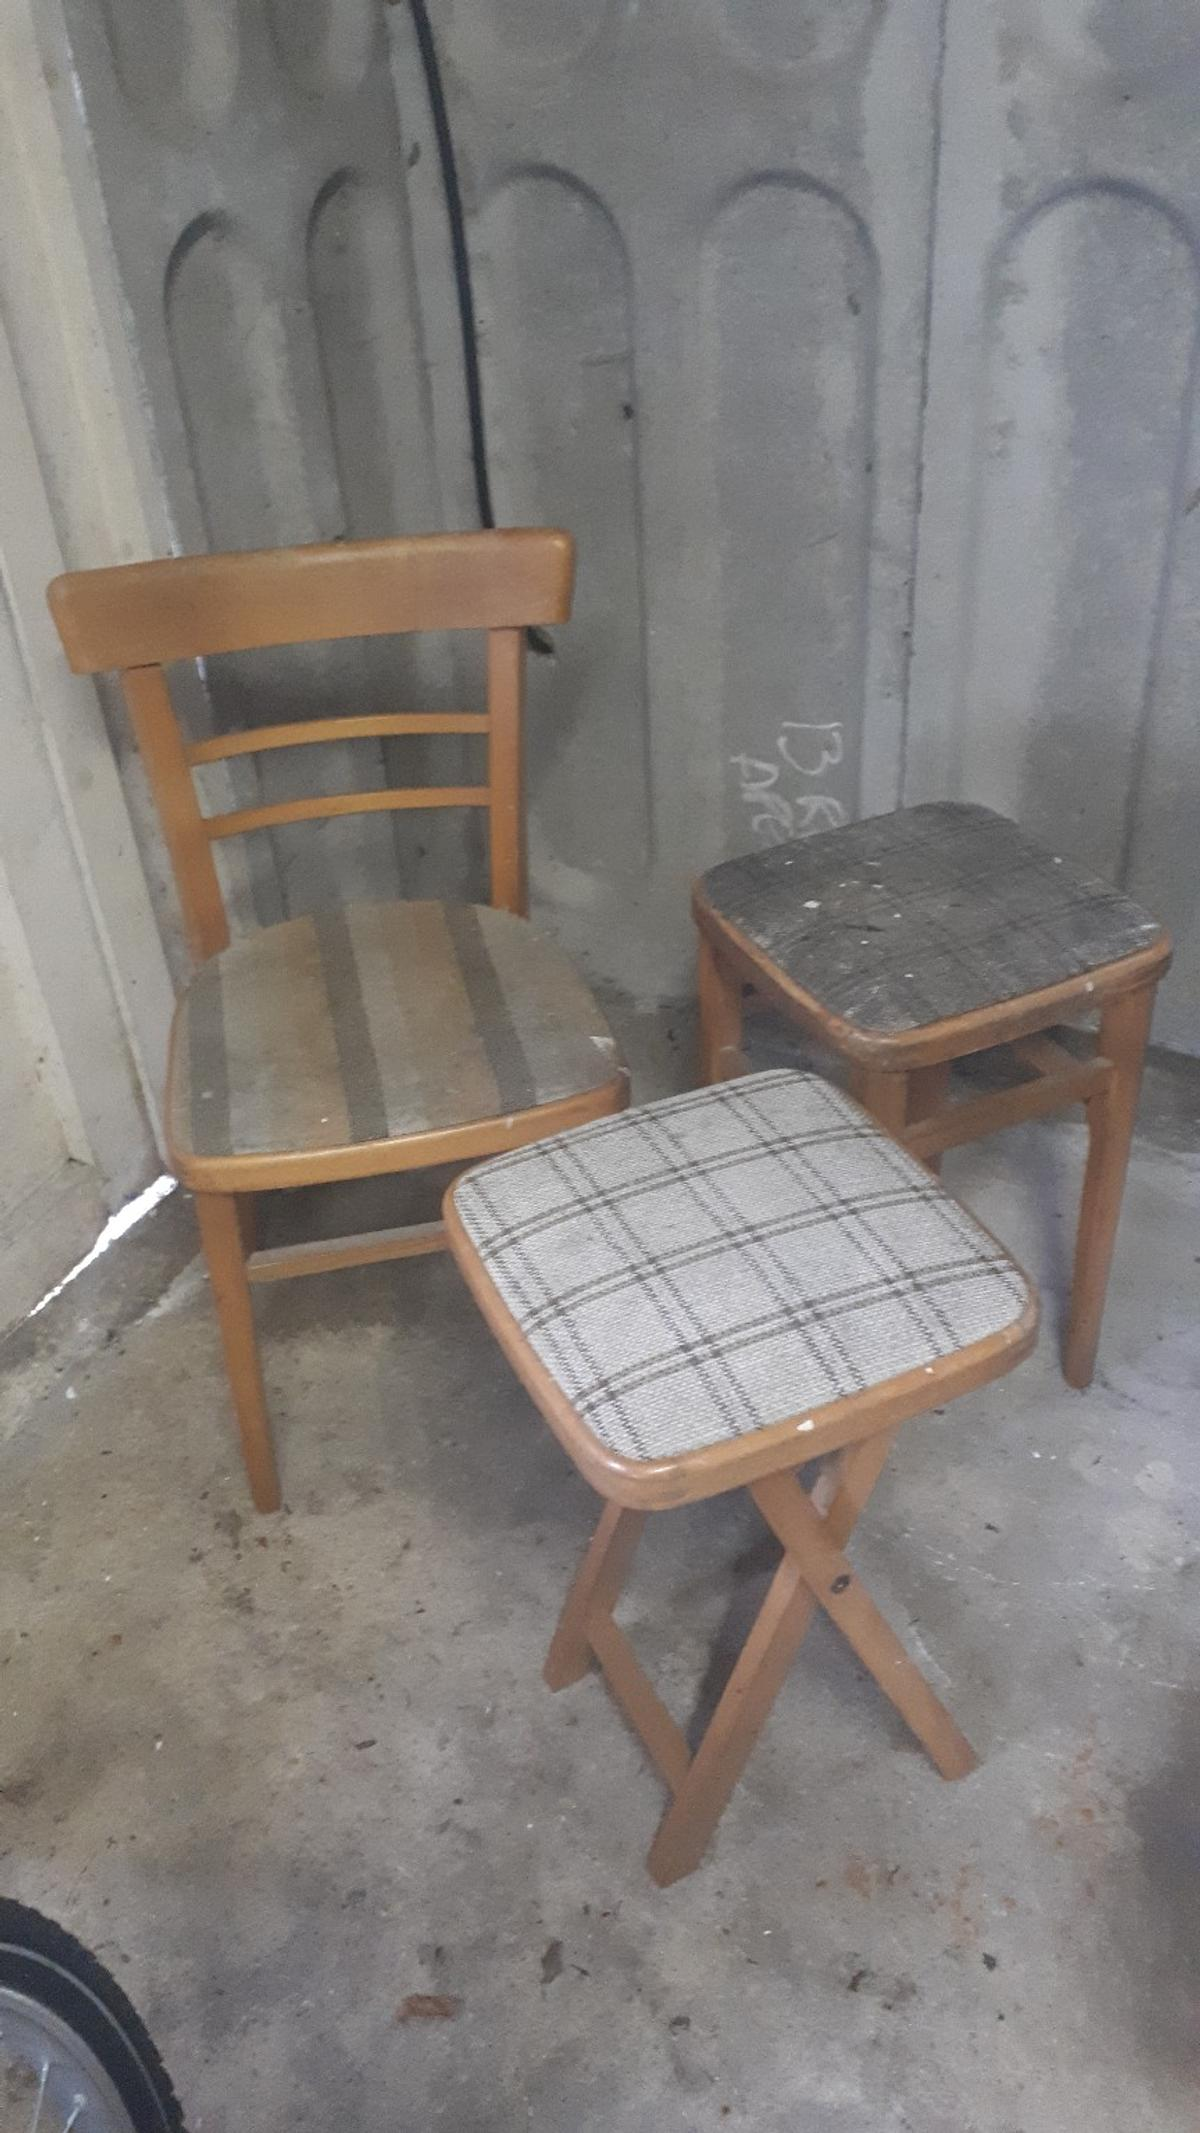 Pleasing Selection Of Vintage Stools And Chairs Pdpeps Interior Chair Design Pdpepsorg